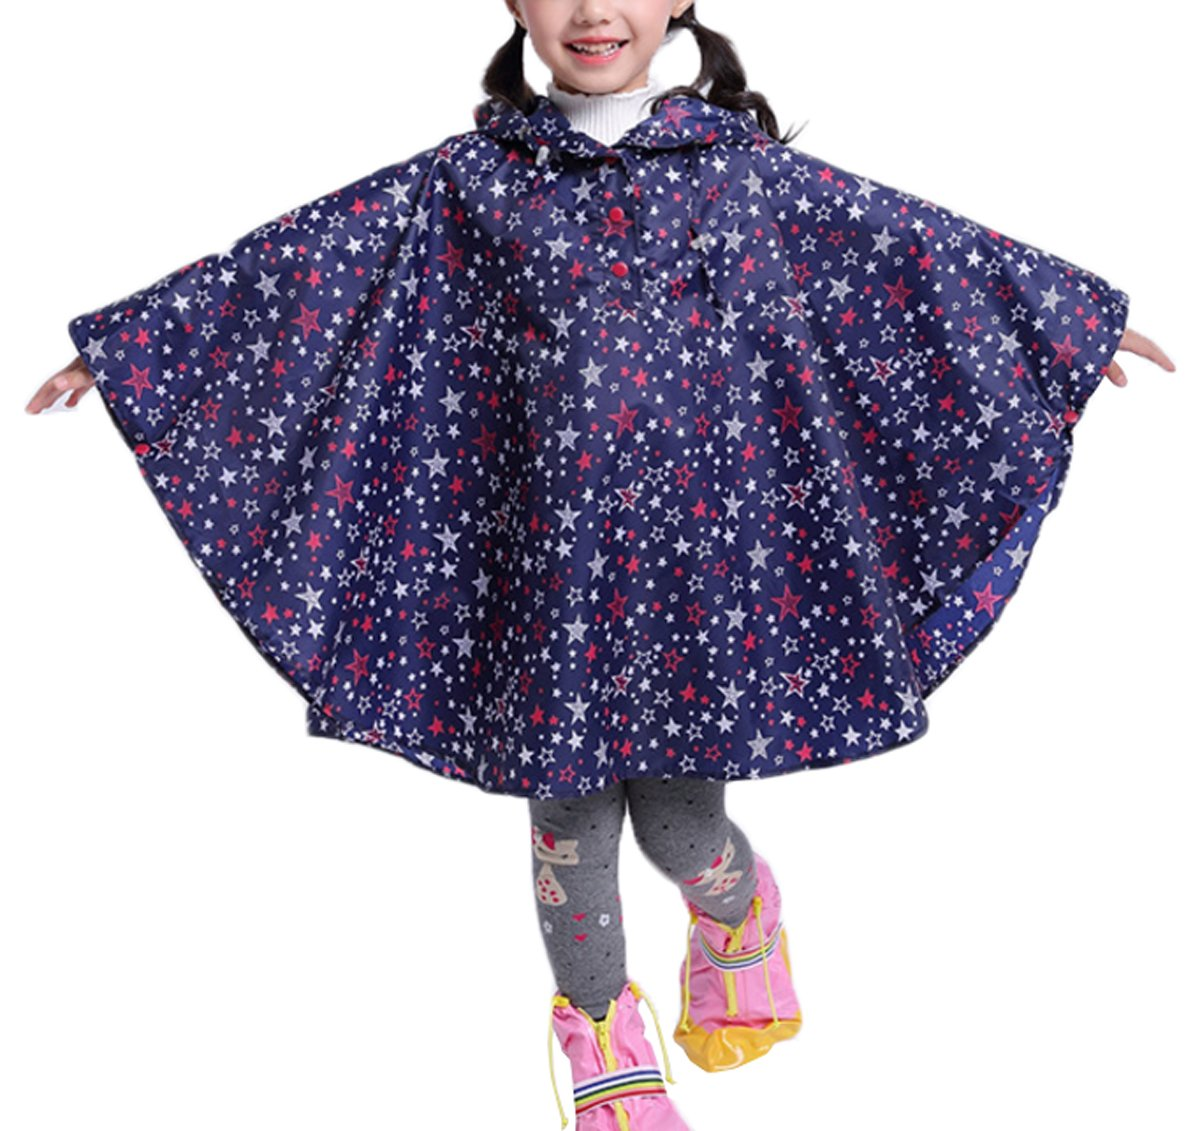 Comfysail Kids Star Hooded Rain Poncho Coat Waterproof Raincoat with Easy Carry Pouch Boys Girls